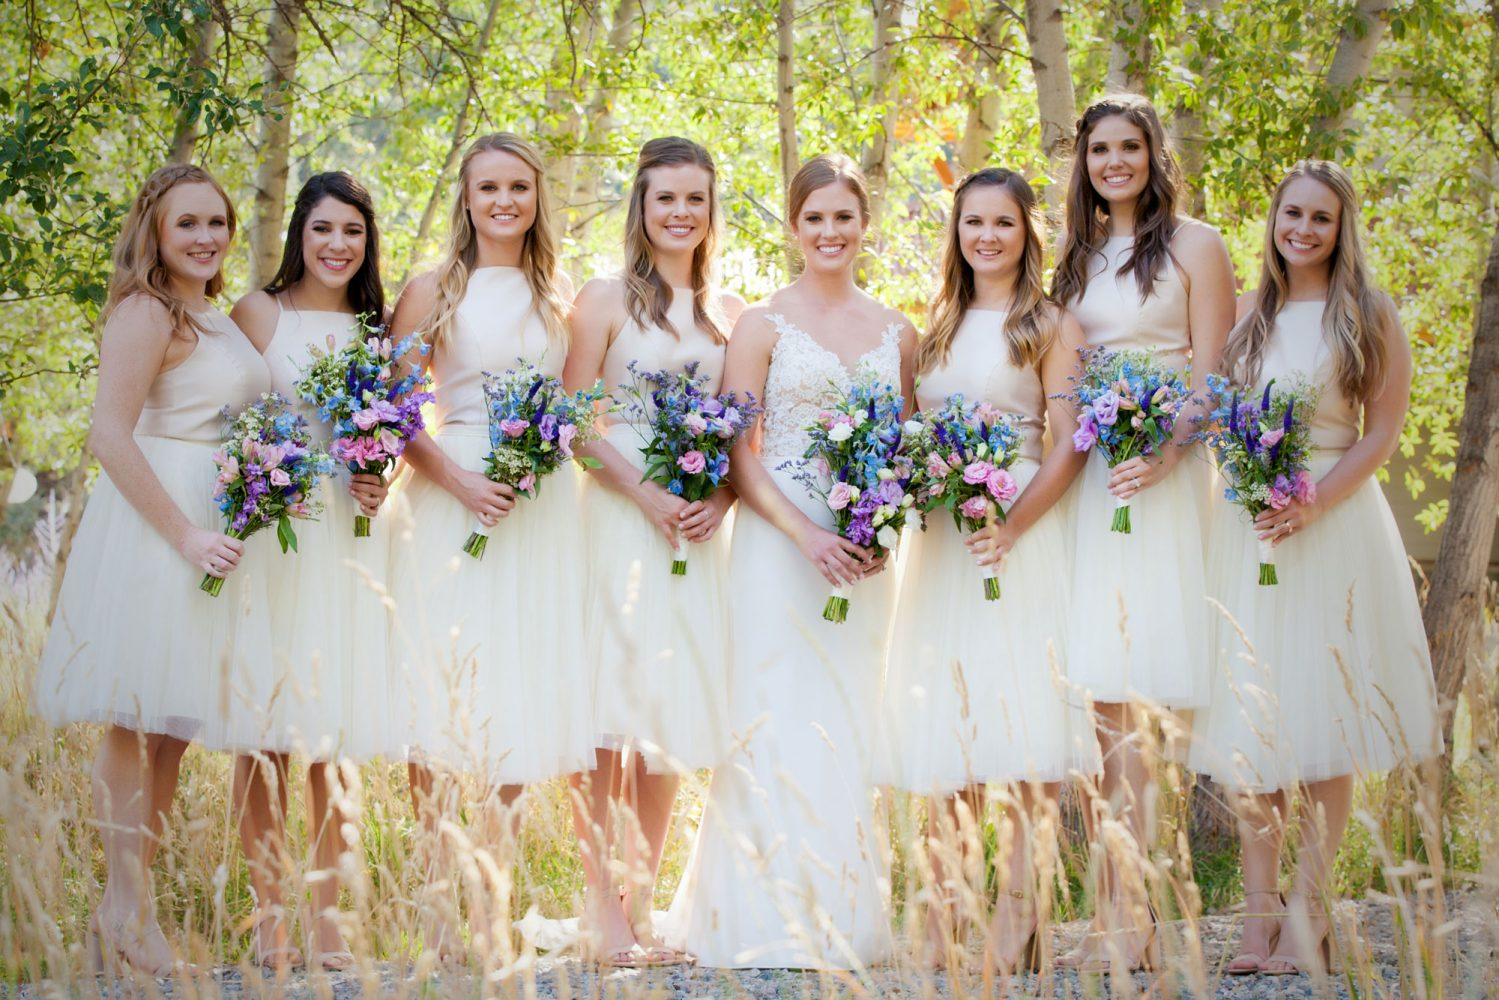 Bridesmaids wearing ivory from a Backyard wedding in Durango, Colorado